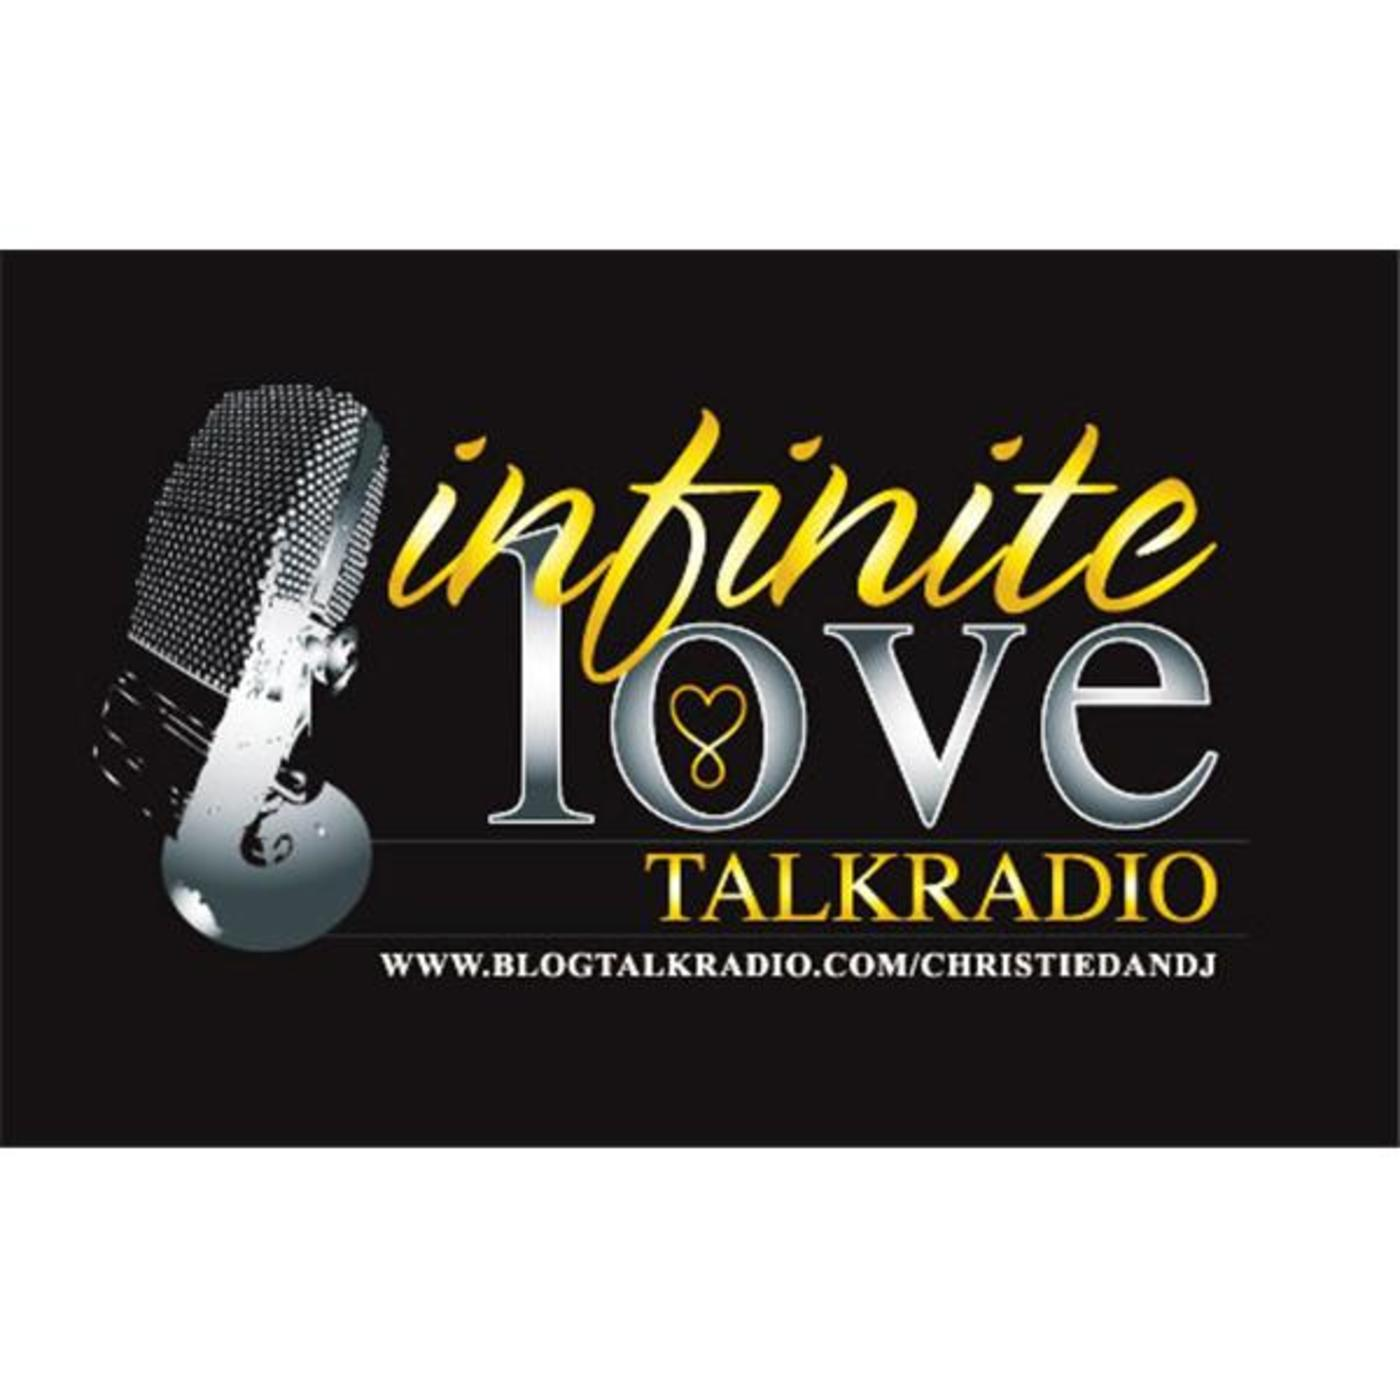 THE CHRISTIE'S INFINITELOVE TALK RADIO!